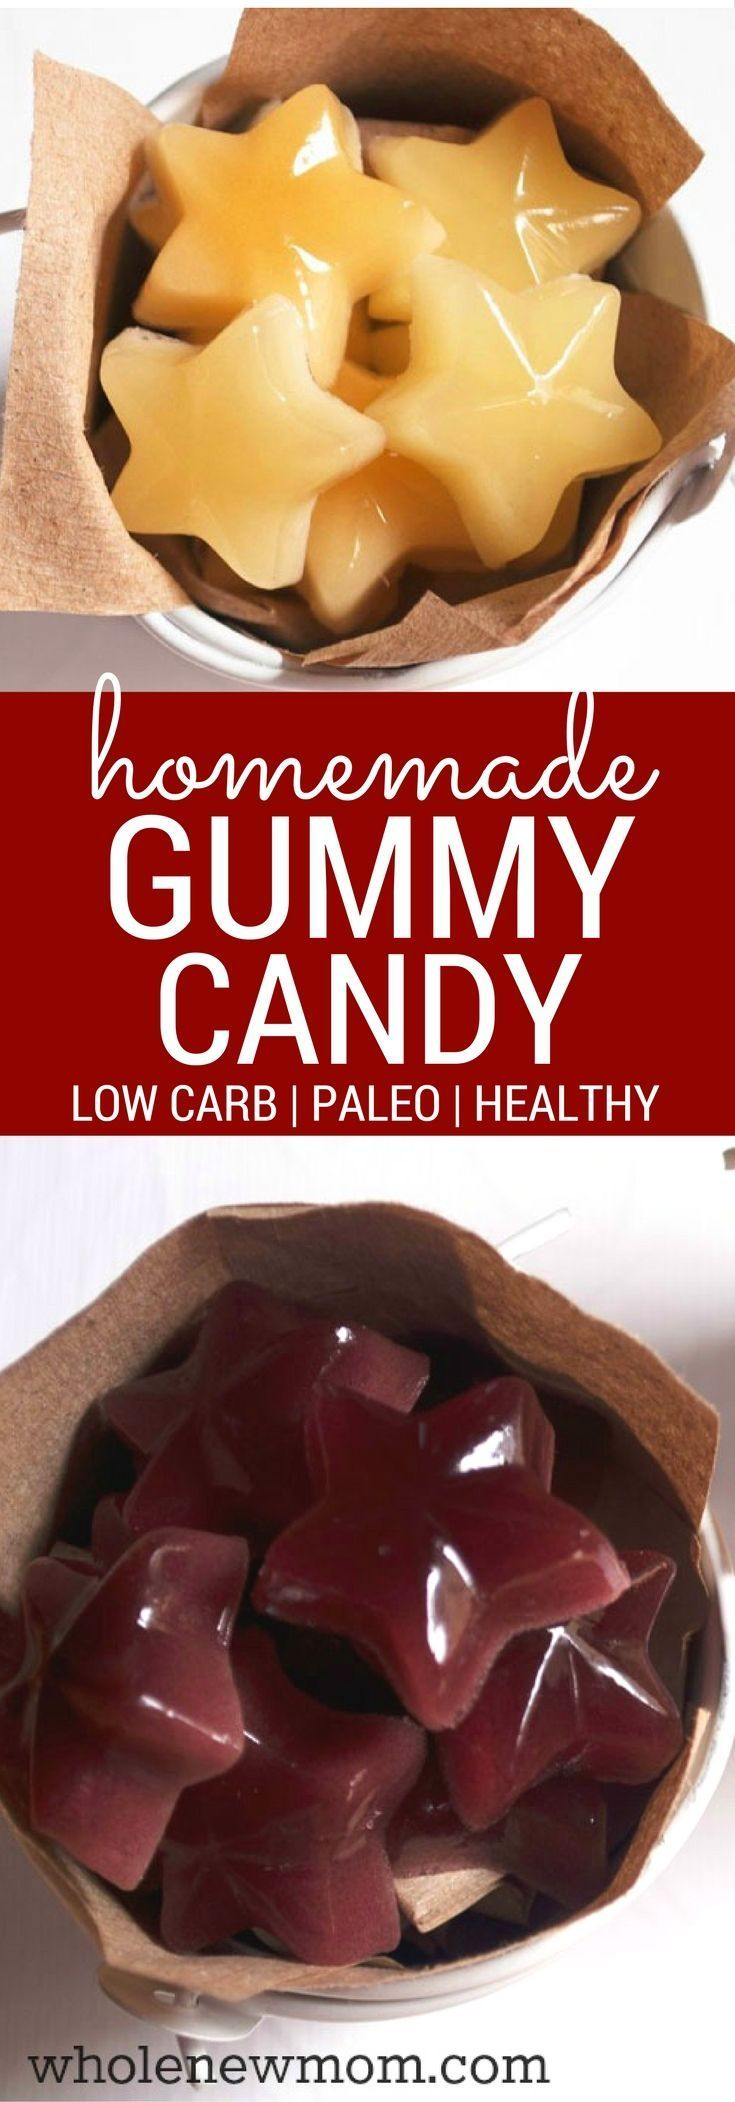 Homemade Gummy Candy An Easy And Super Healthy Treat Recipe Healthy Snacks For Diabetics Food Low Carb Candy